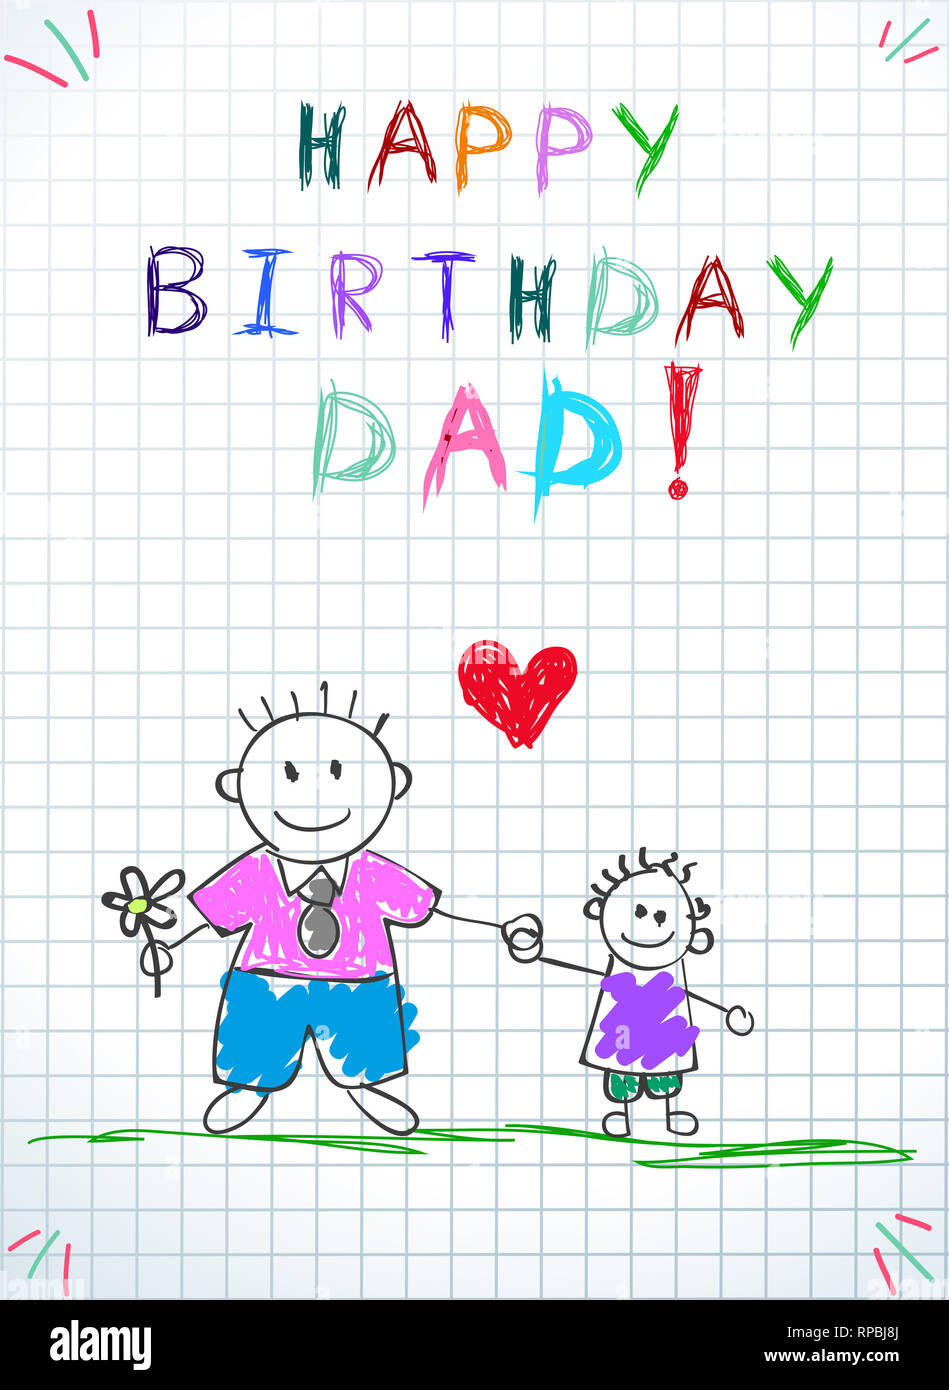 Happy Birthday Daddy High Resolution Stock Photography And Images Alamy